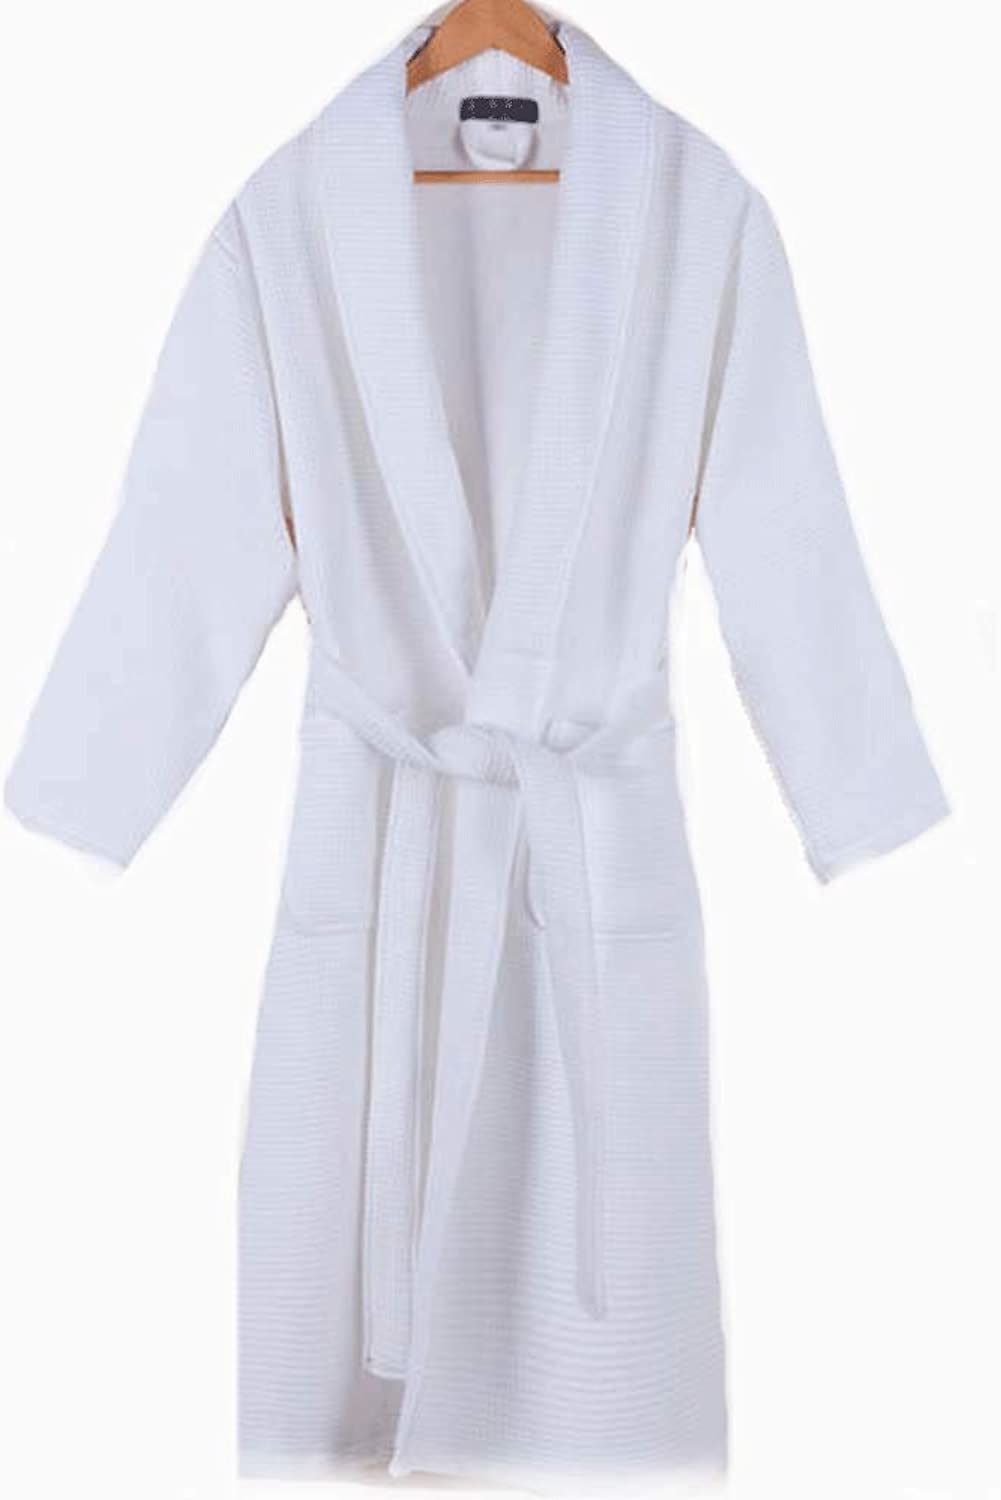 YONGYONG Nightgown Cotton Waffle Long Couple Pajamas Long Sleeves Autumn and Winter White bluee Men and Women Hotel Bathrobe YONGYONG (color   White M)